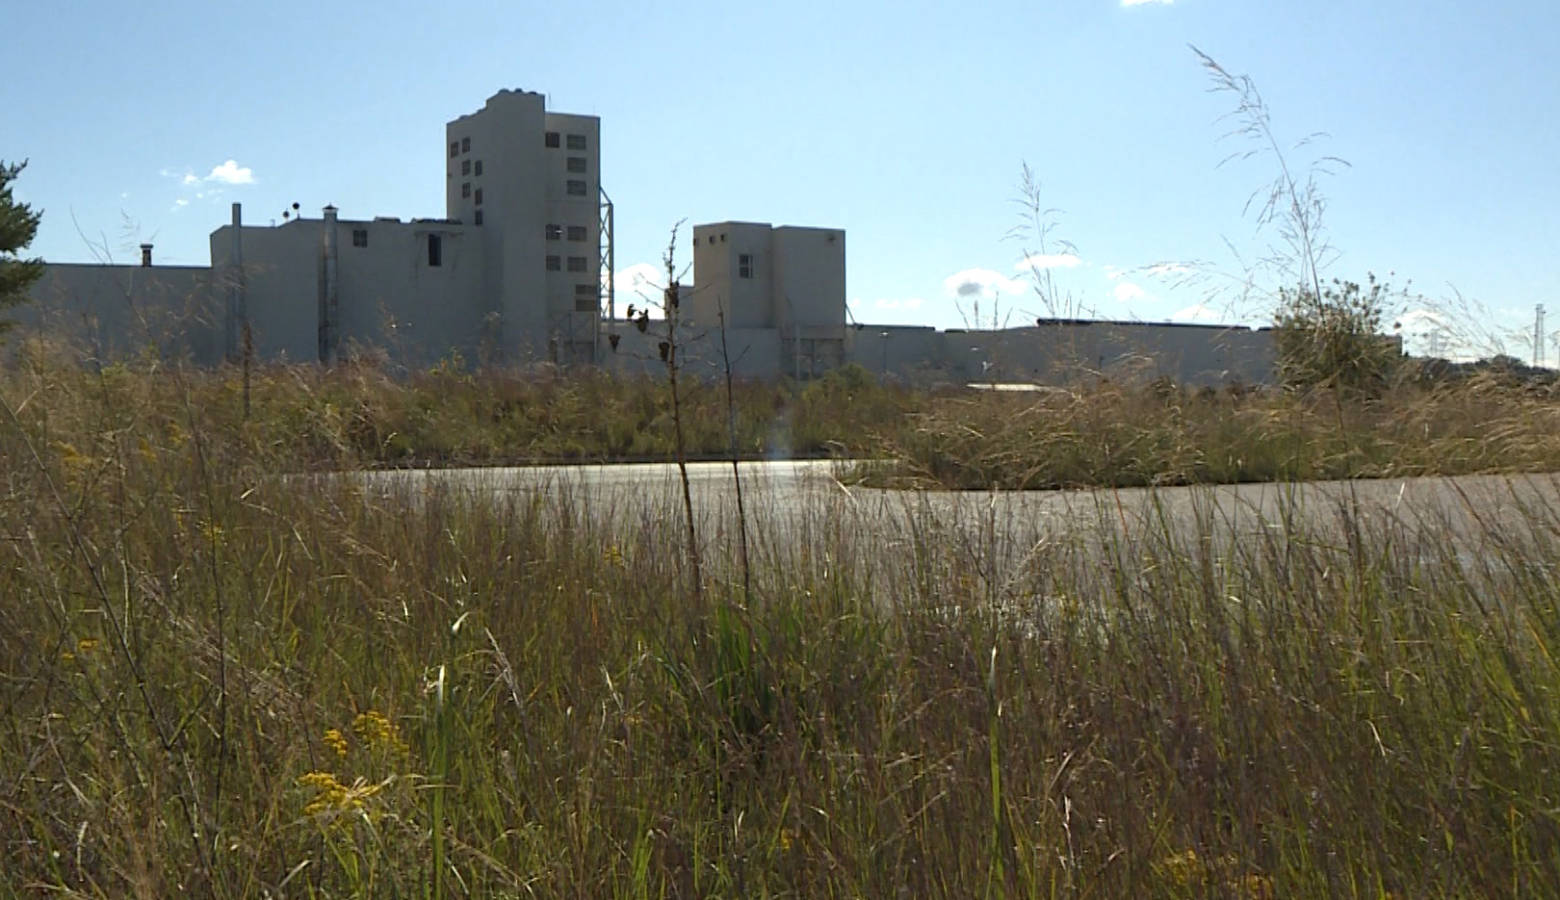 The U.S. Steel facility overlooks the Portage Lakefront and Riverwalk. (Tyler Lake/WTIU)